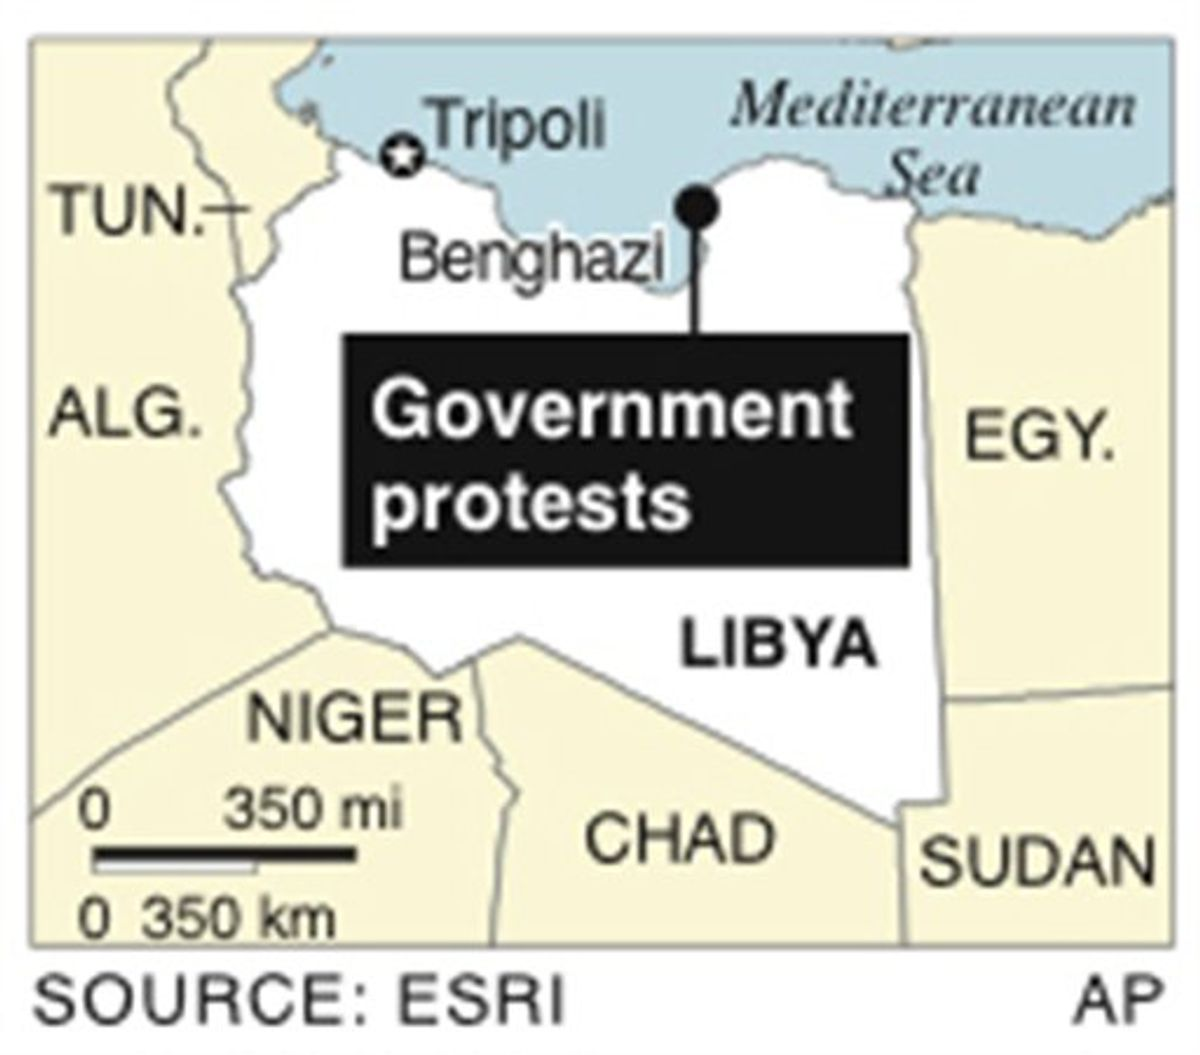 Map locates Benghazi, Libya, where there are protests to ouster the government (AP)